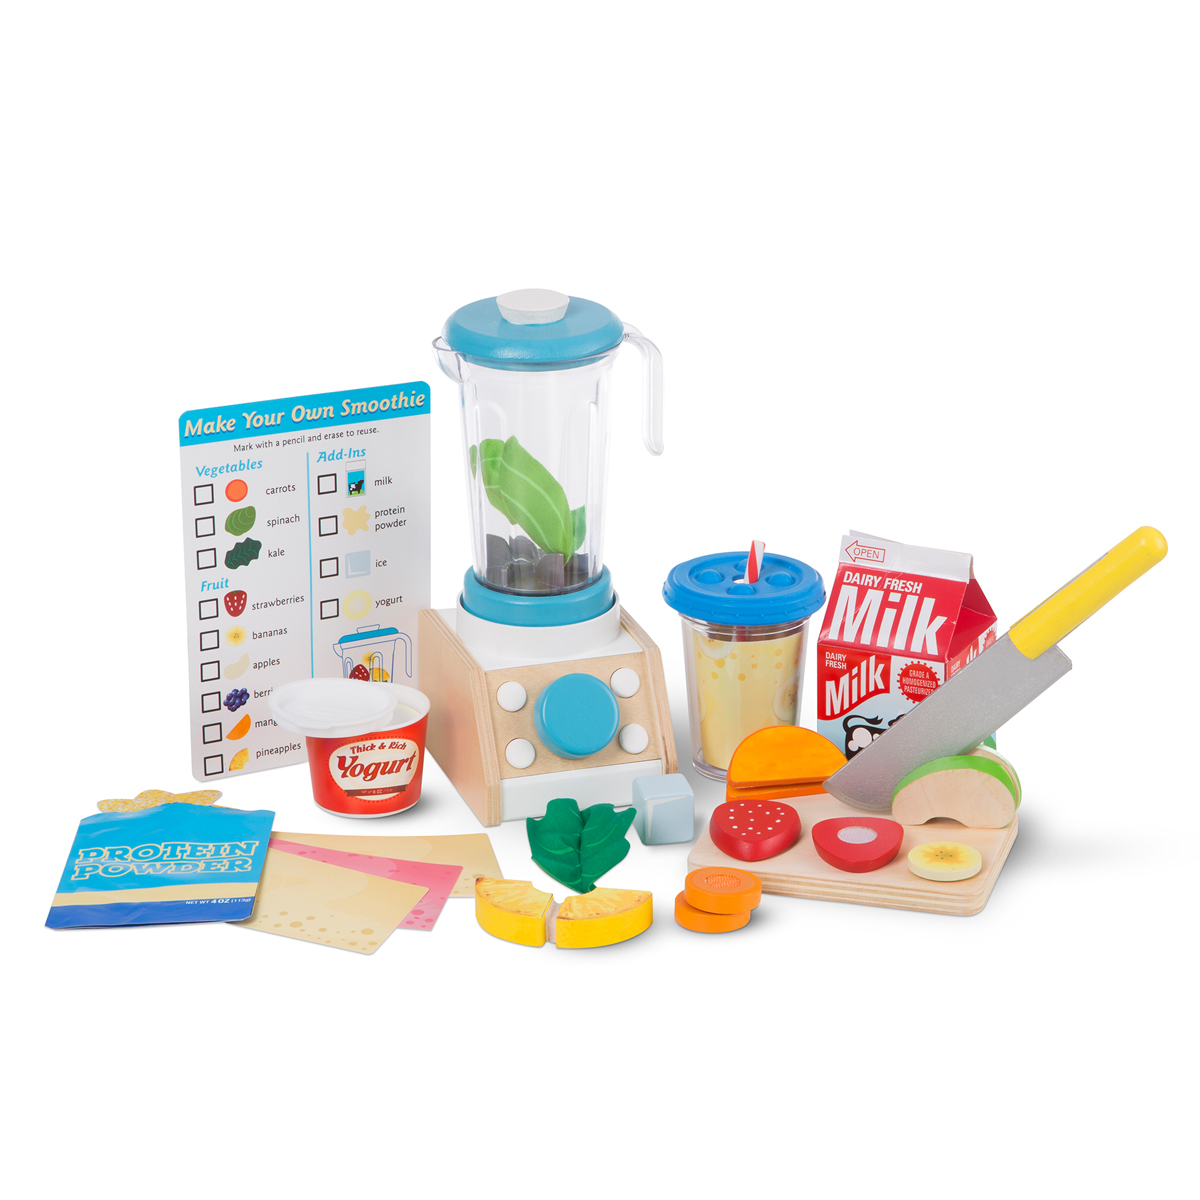 Melissa & Doug Smoothie Maker play set